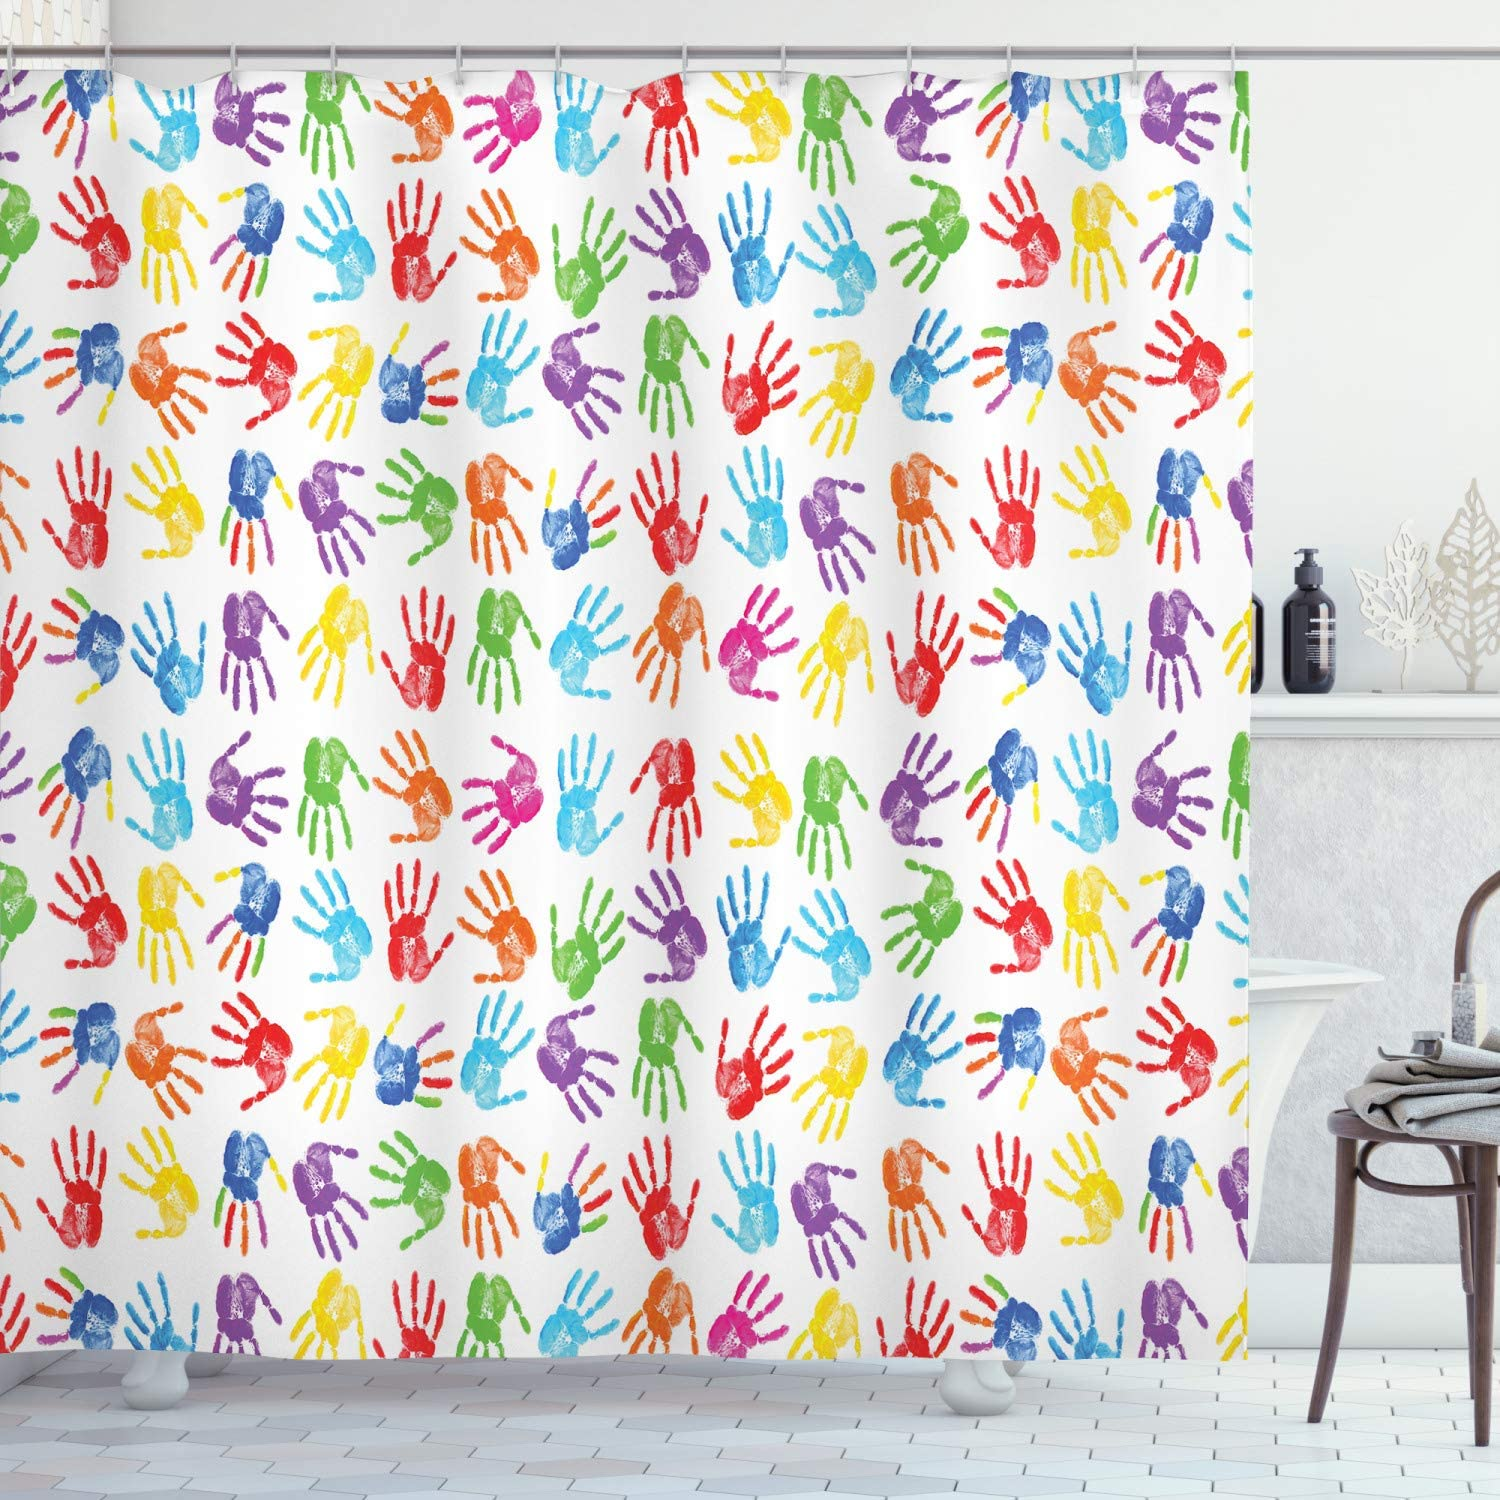 """Ambesonne Colorful Shower Curtain, Human Handprint Kids Watercolor Paint Effect Open Palms Collage Art Work Print, Cloth Fabric Bathroom Decor Set with Hooks, 70"""" Long, Multicolor"""